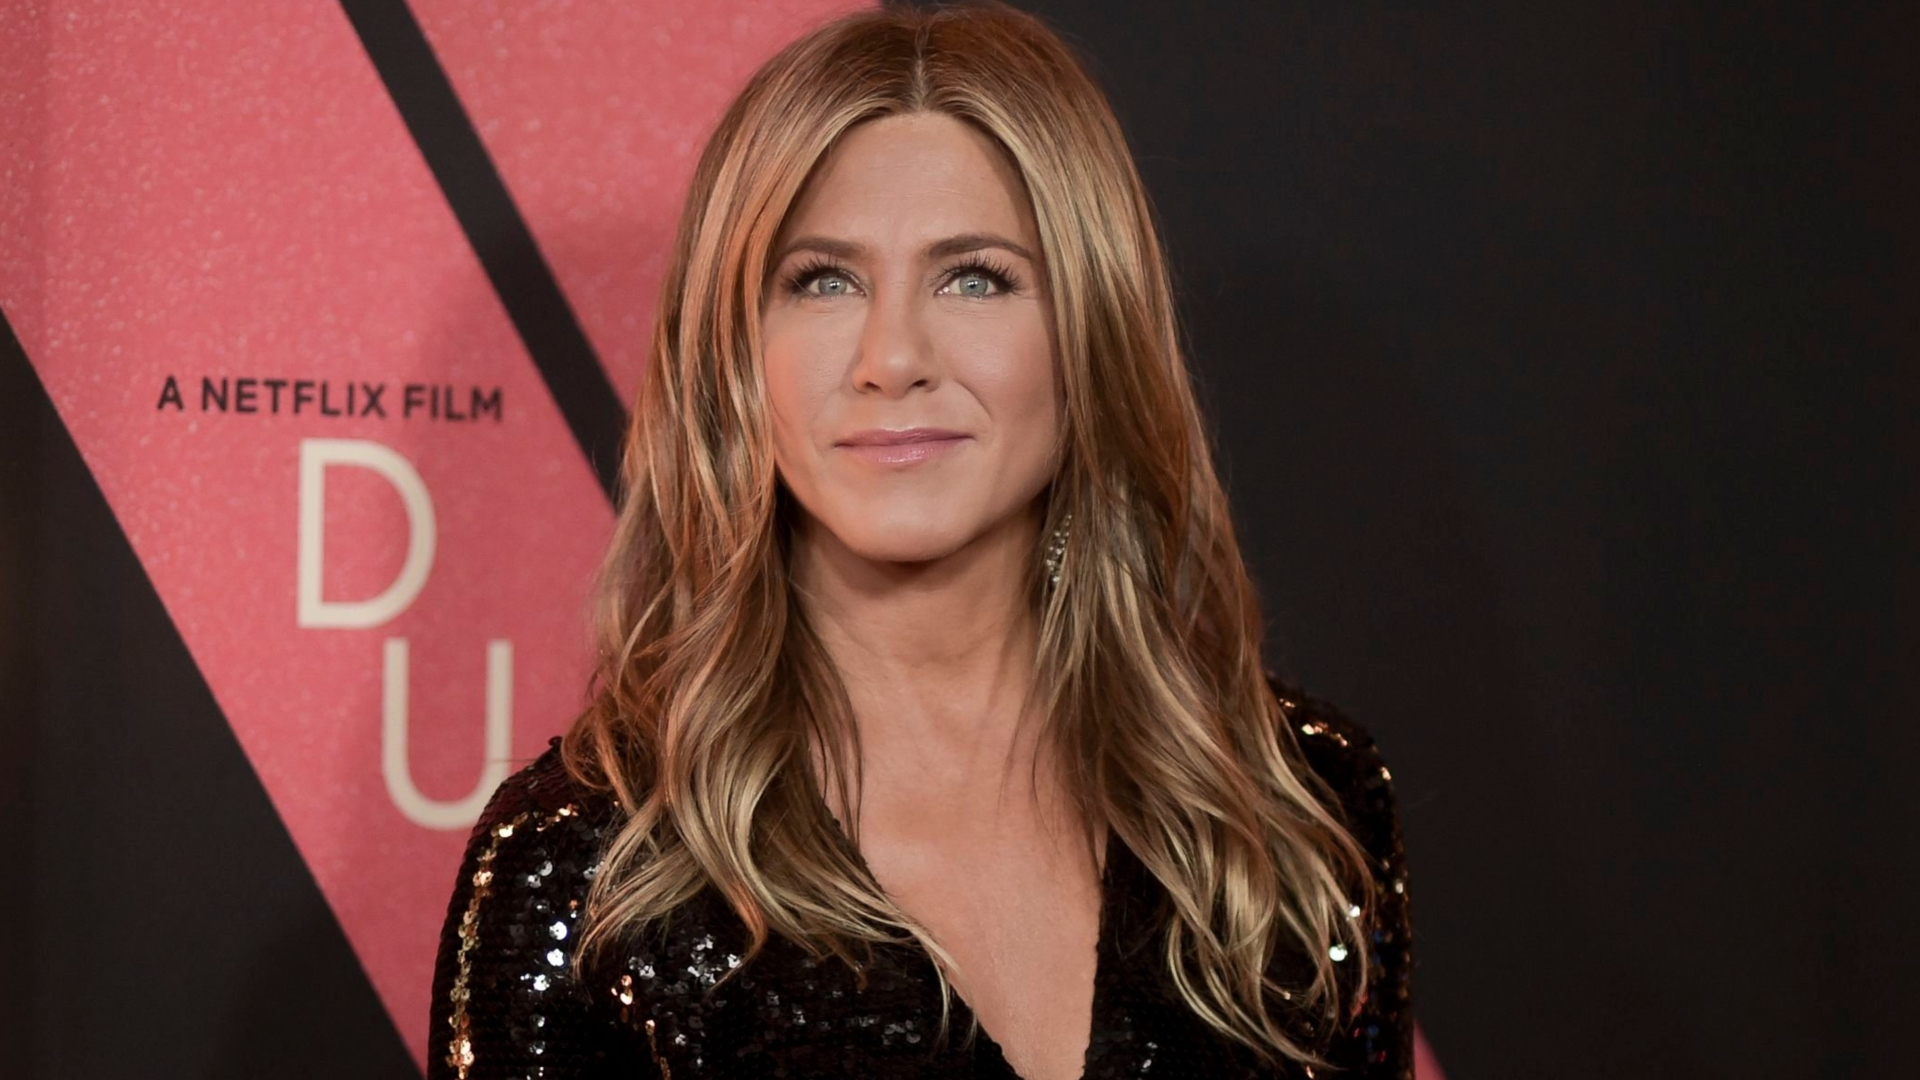 Who Is Jennifer Aniston Dating After Justin Theroux Breakup